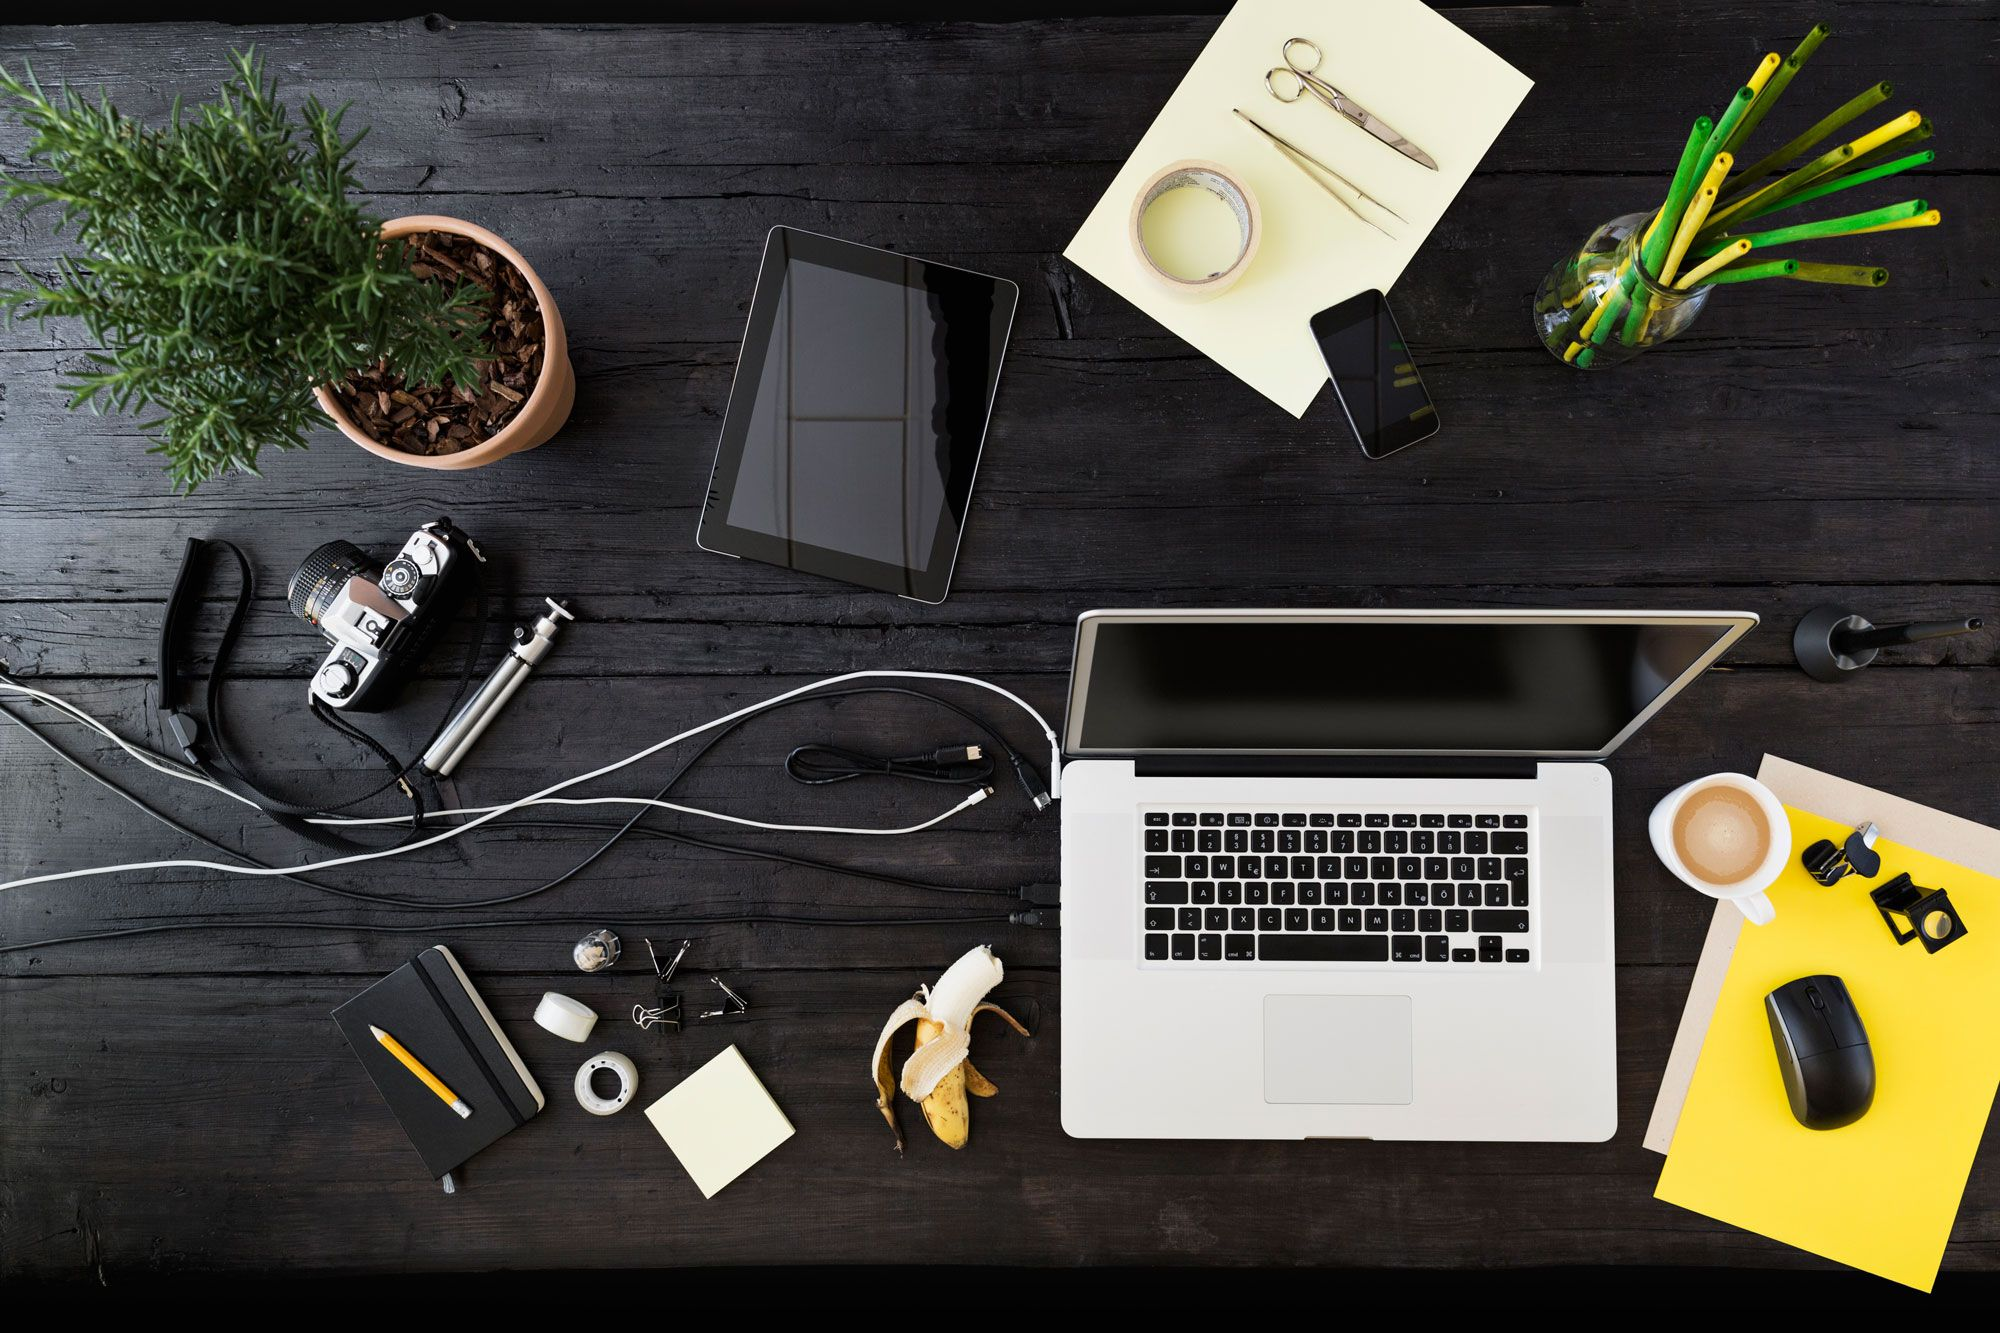 8 Tools You Need To Start Your Own Business